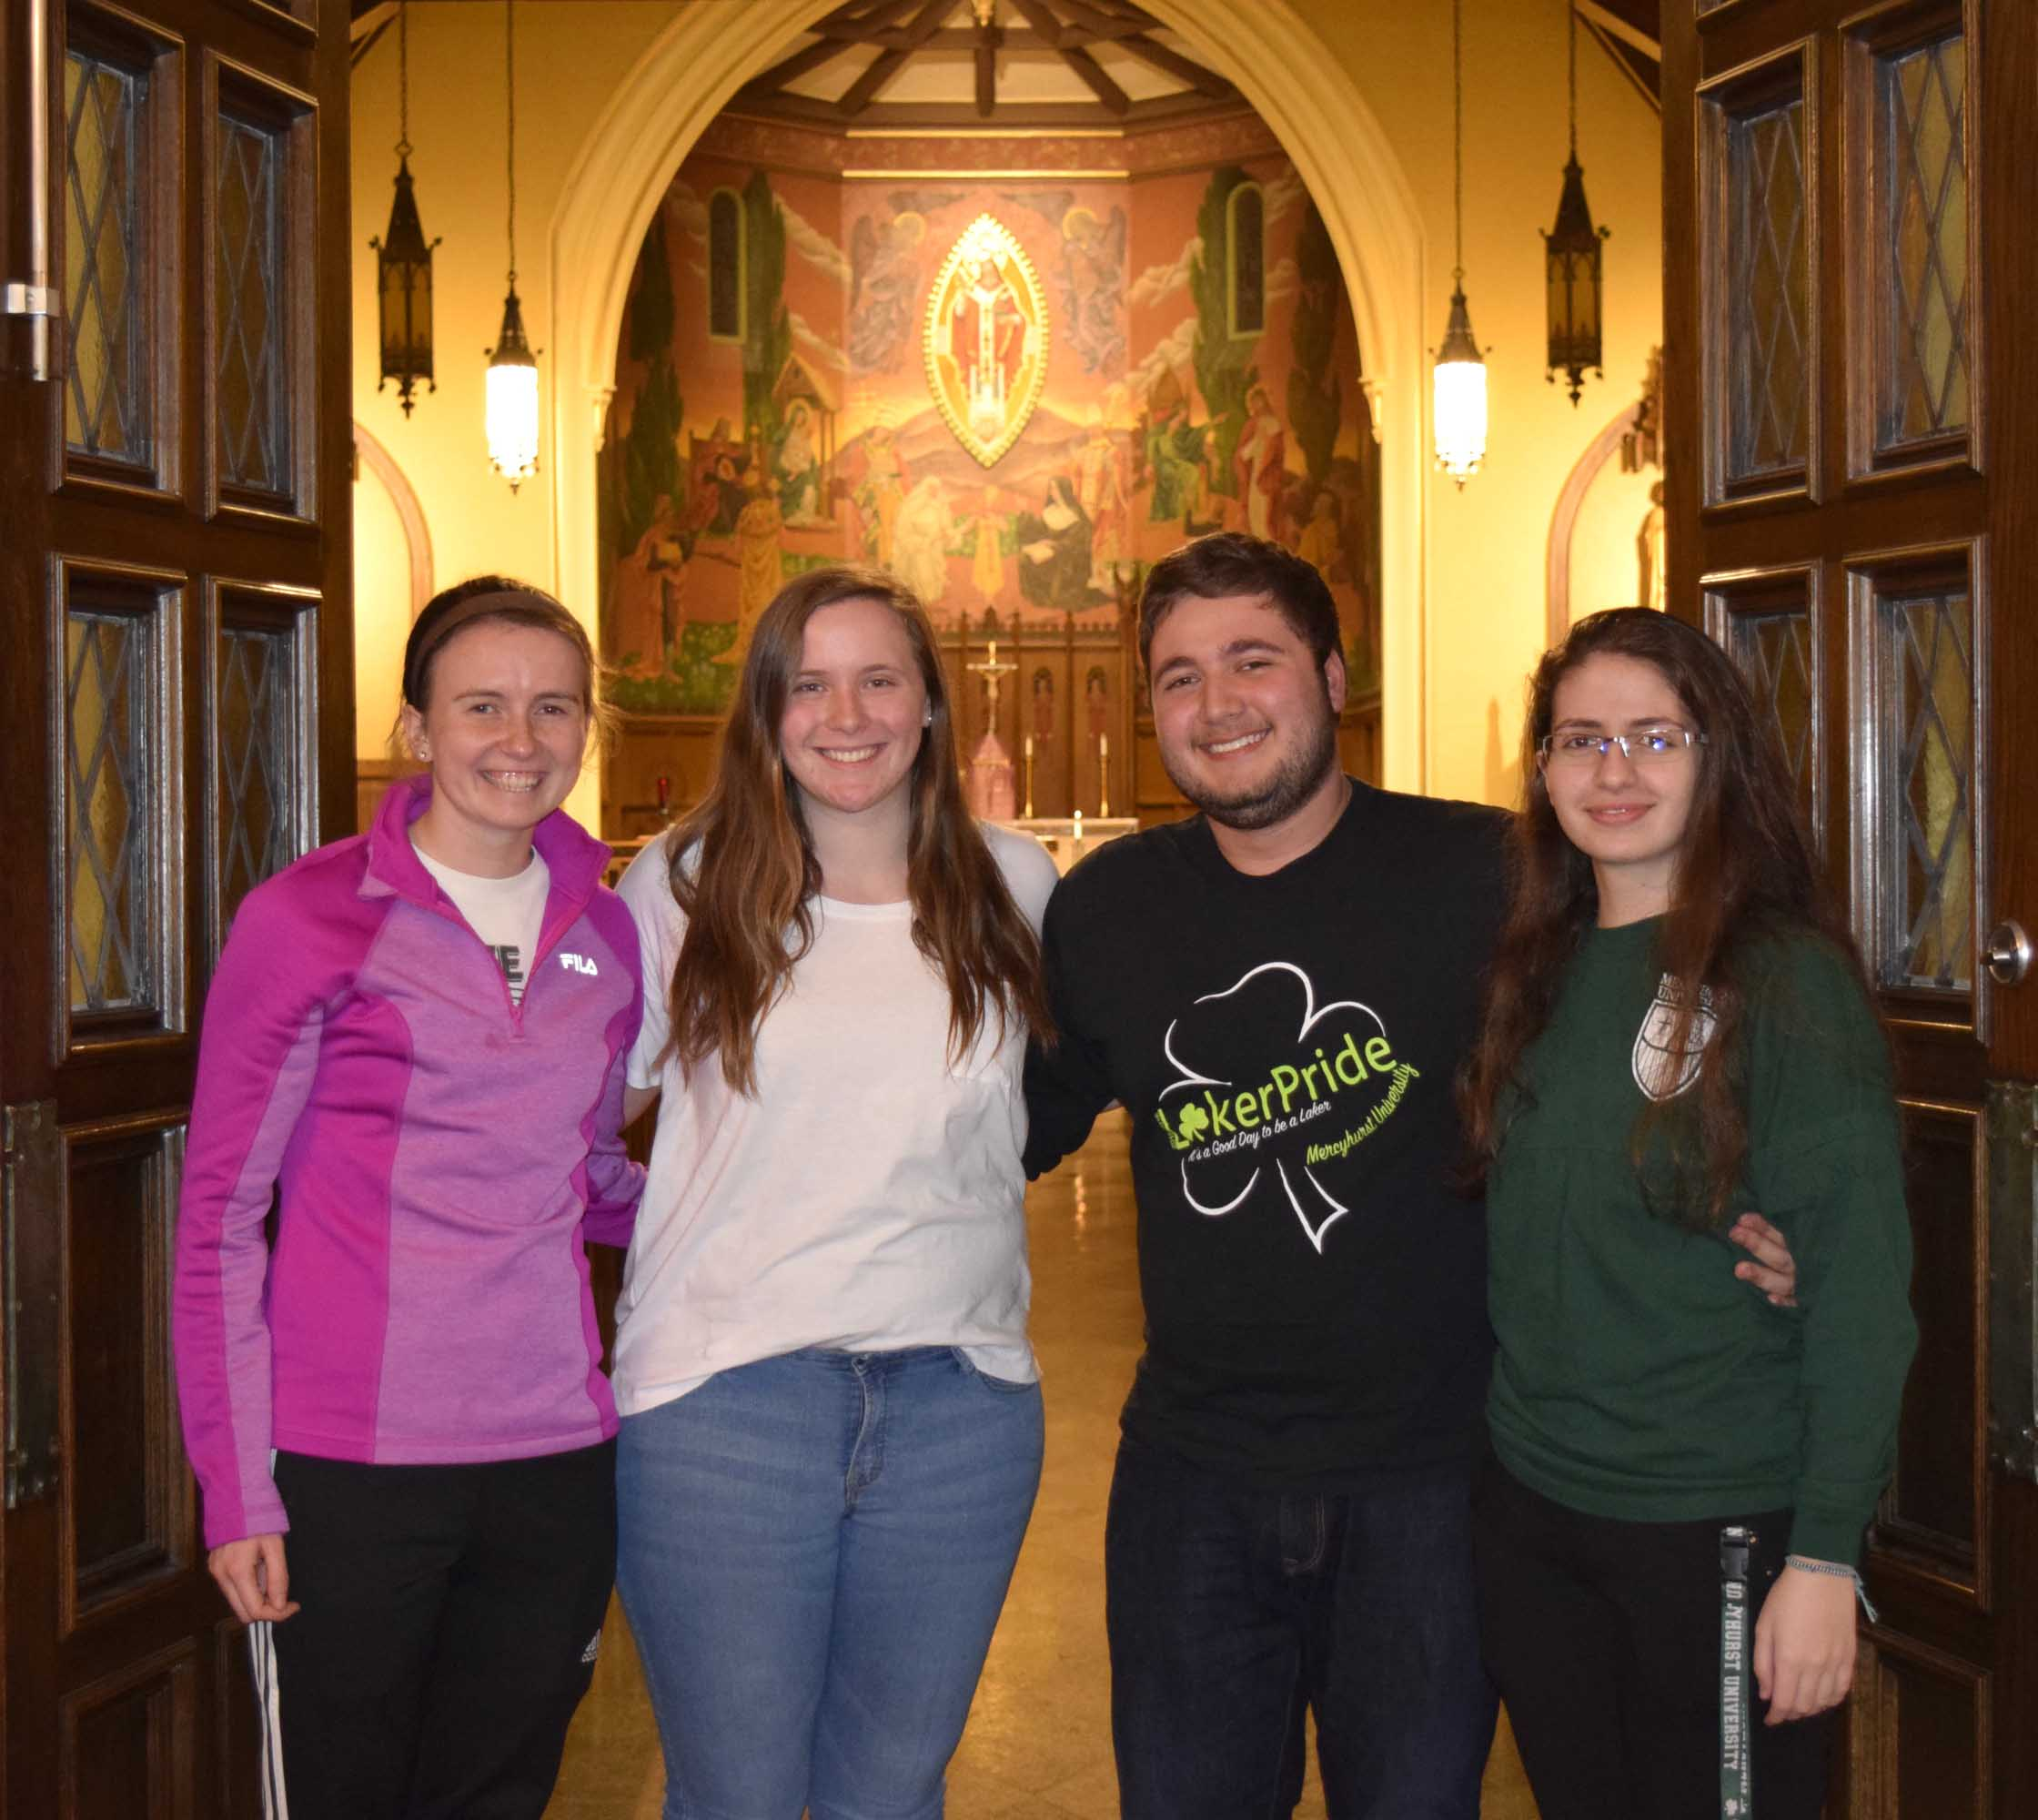 A team of student leaders plan Catholic Devotions each week. From left to right: Mary Jaskowak, Rebecca Harms, Sergio Cortes and Nour Hijazeen.